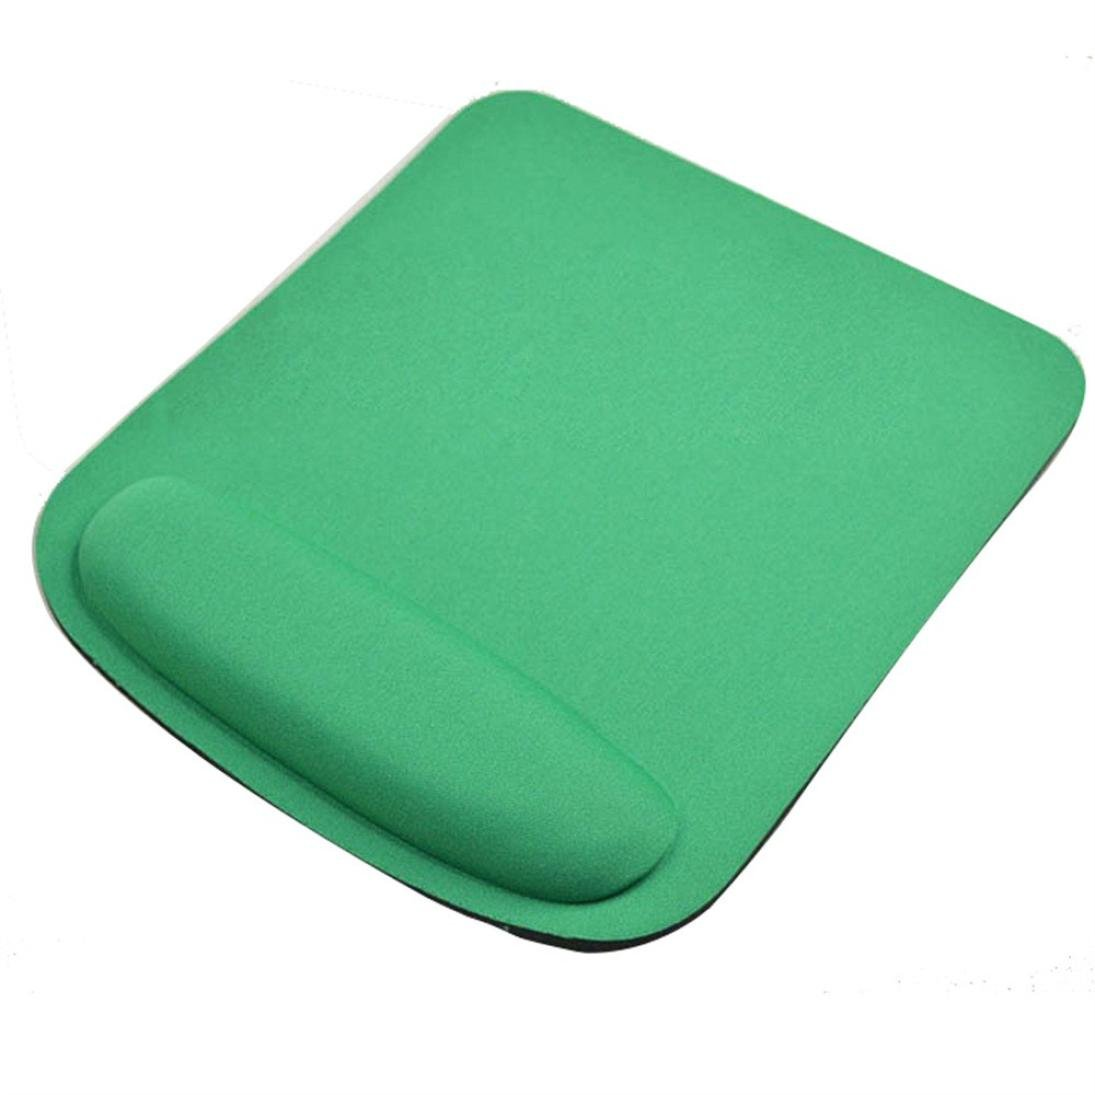 Coohole Gel Wrist Rest Support Game Mouse Mat Anti-slip Pad for Computer PC Laptop (Green 1, A)